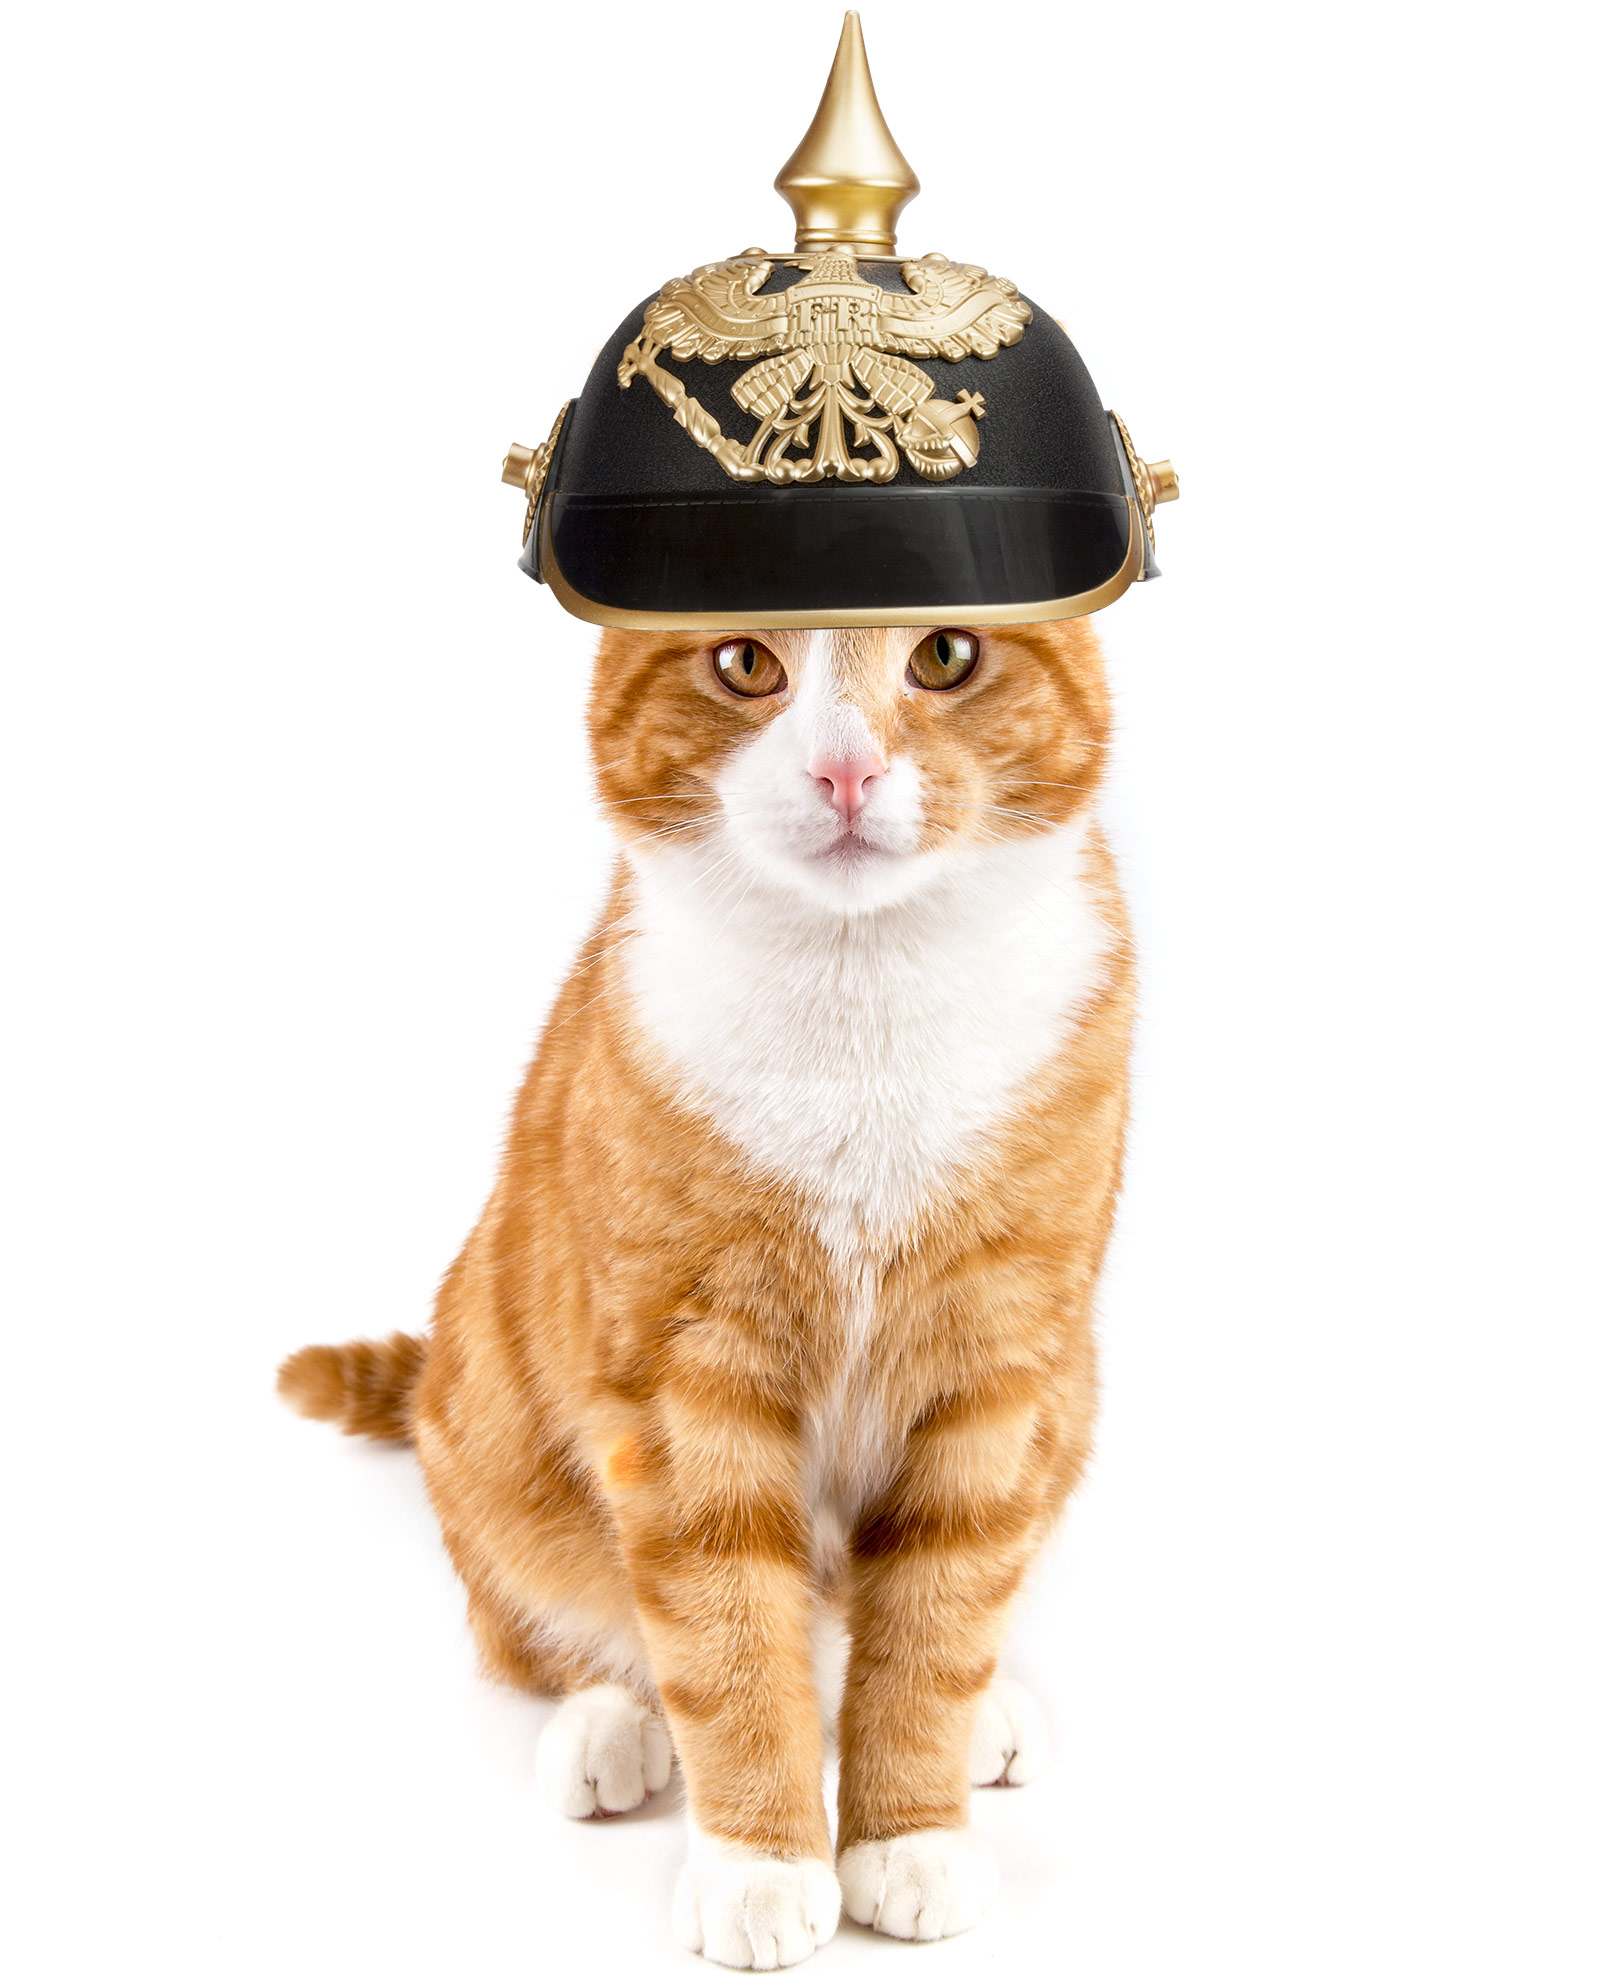 cat-wearing-german-helmet.jpg